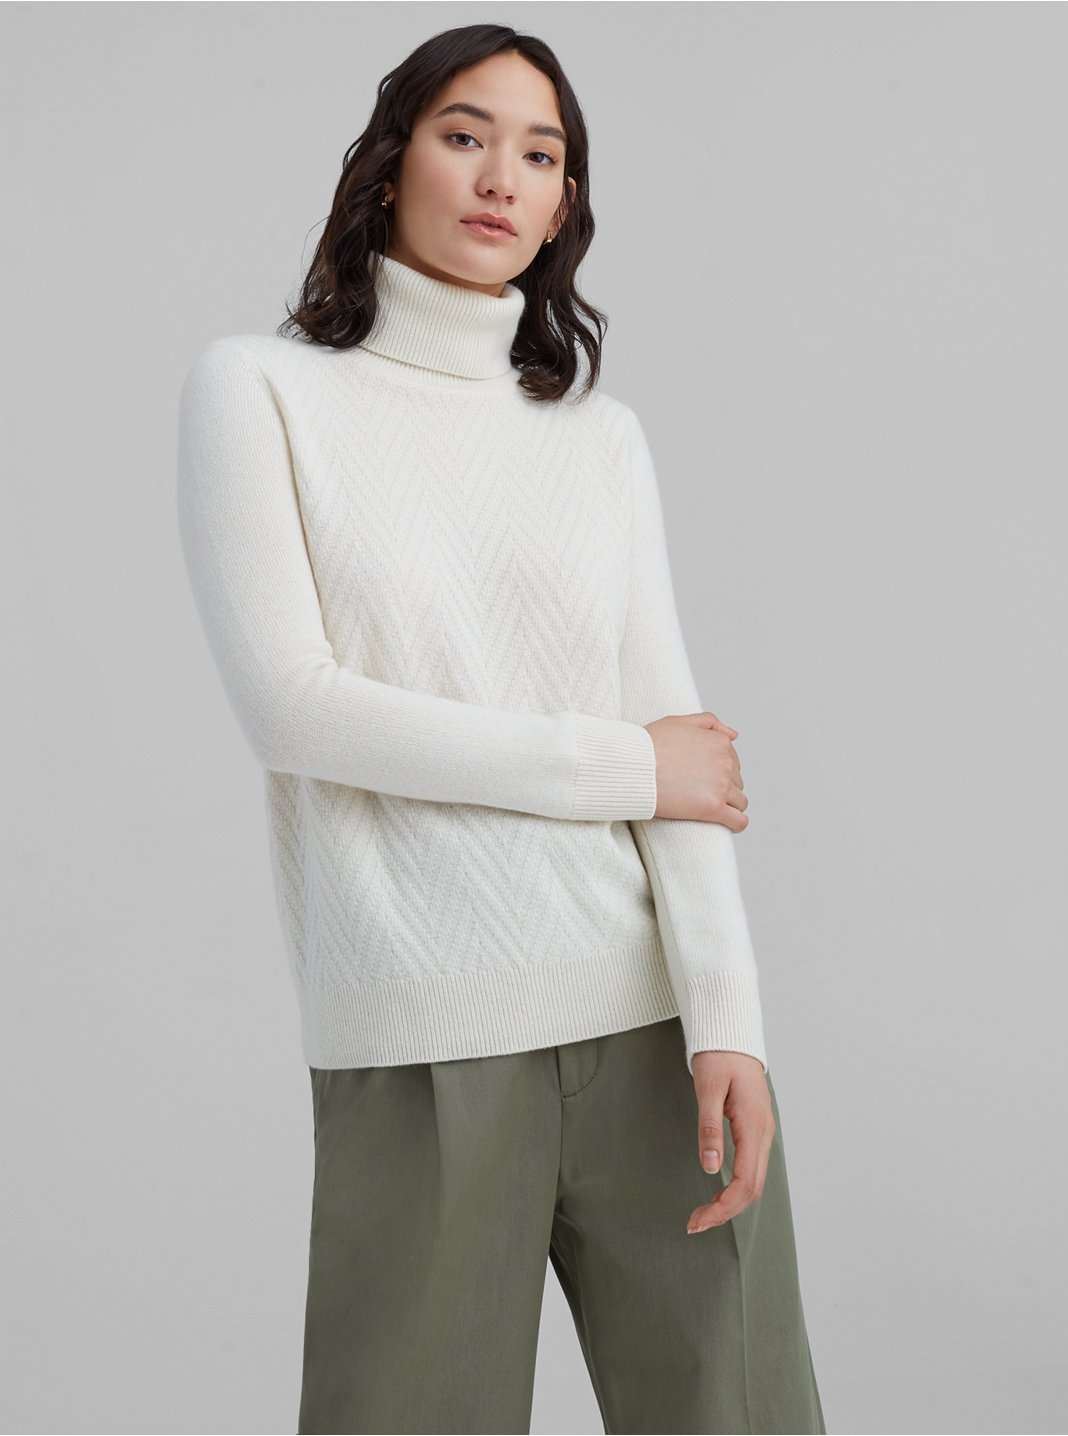 Mixed Stitch Cashmere Turtleneck Sweater